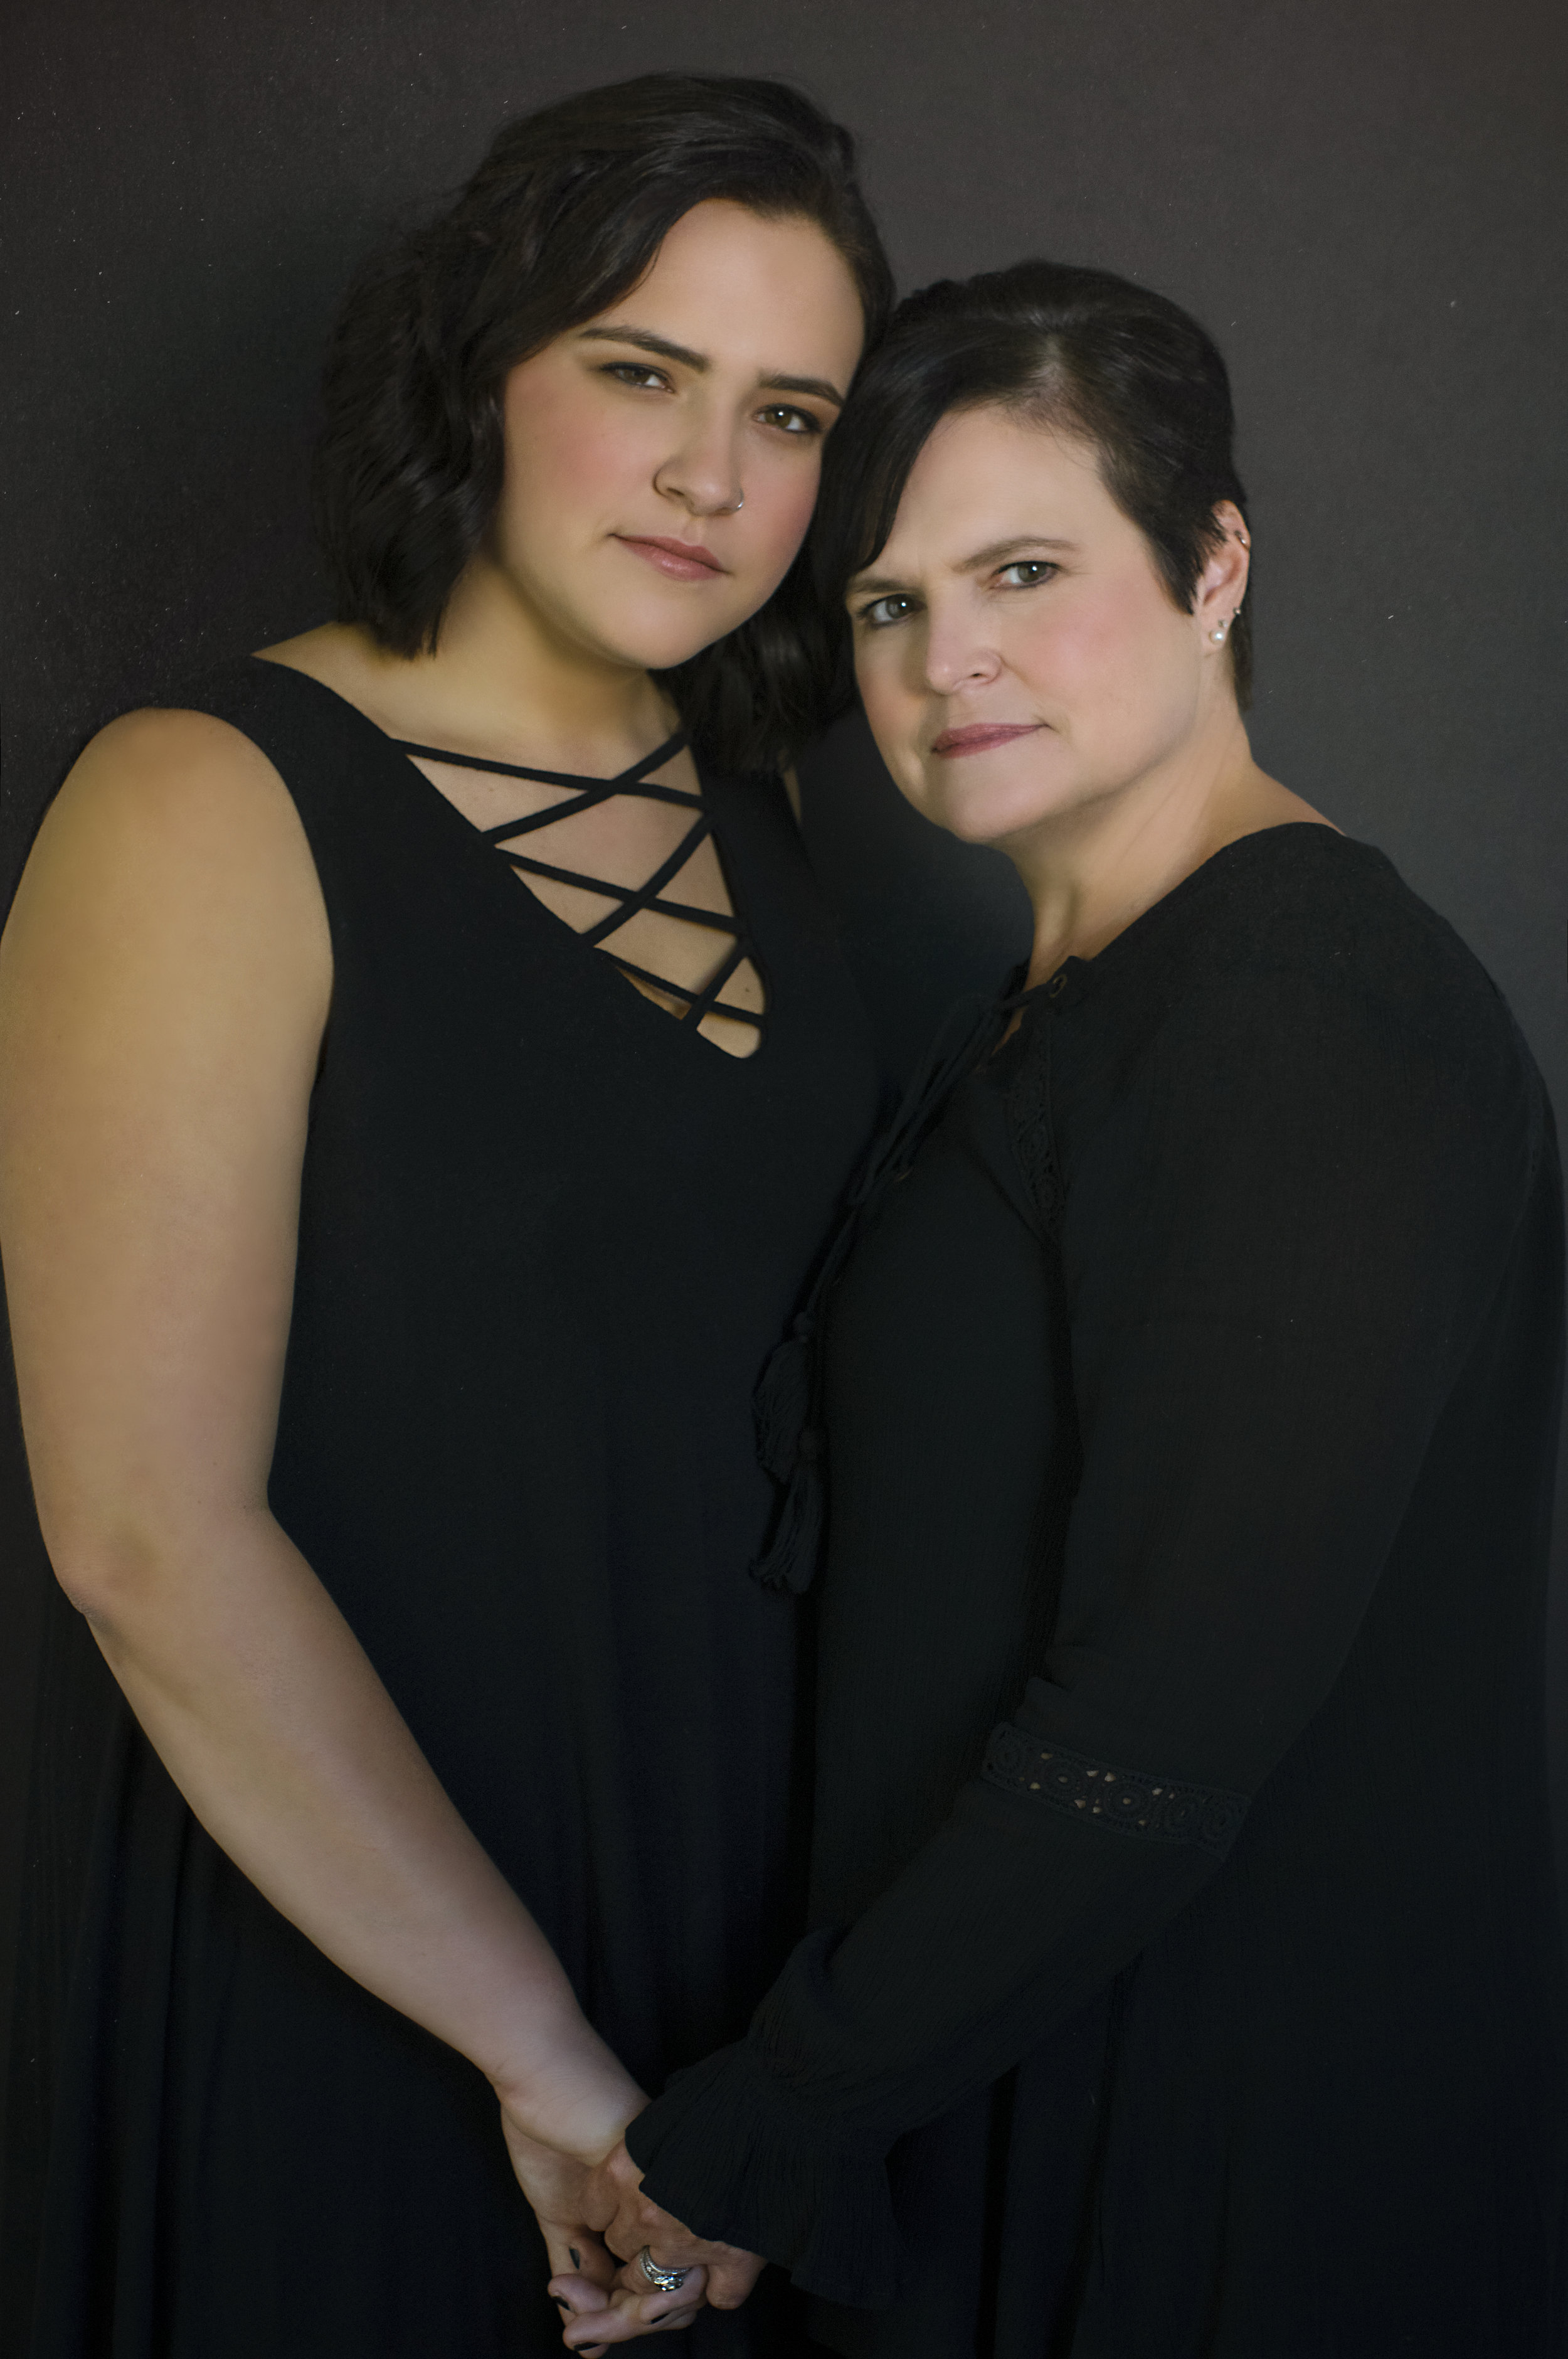 Jackie Daily Photography | Monroe, Louisiana Photographer | Portrait Photographer | Mother and Daughter Portraits